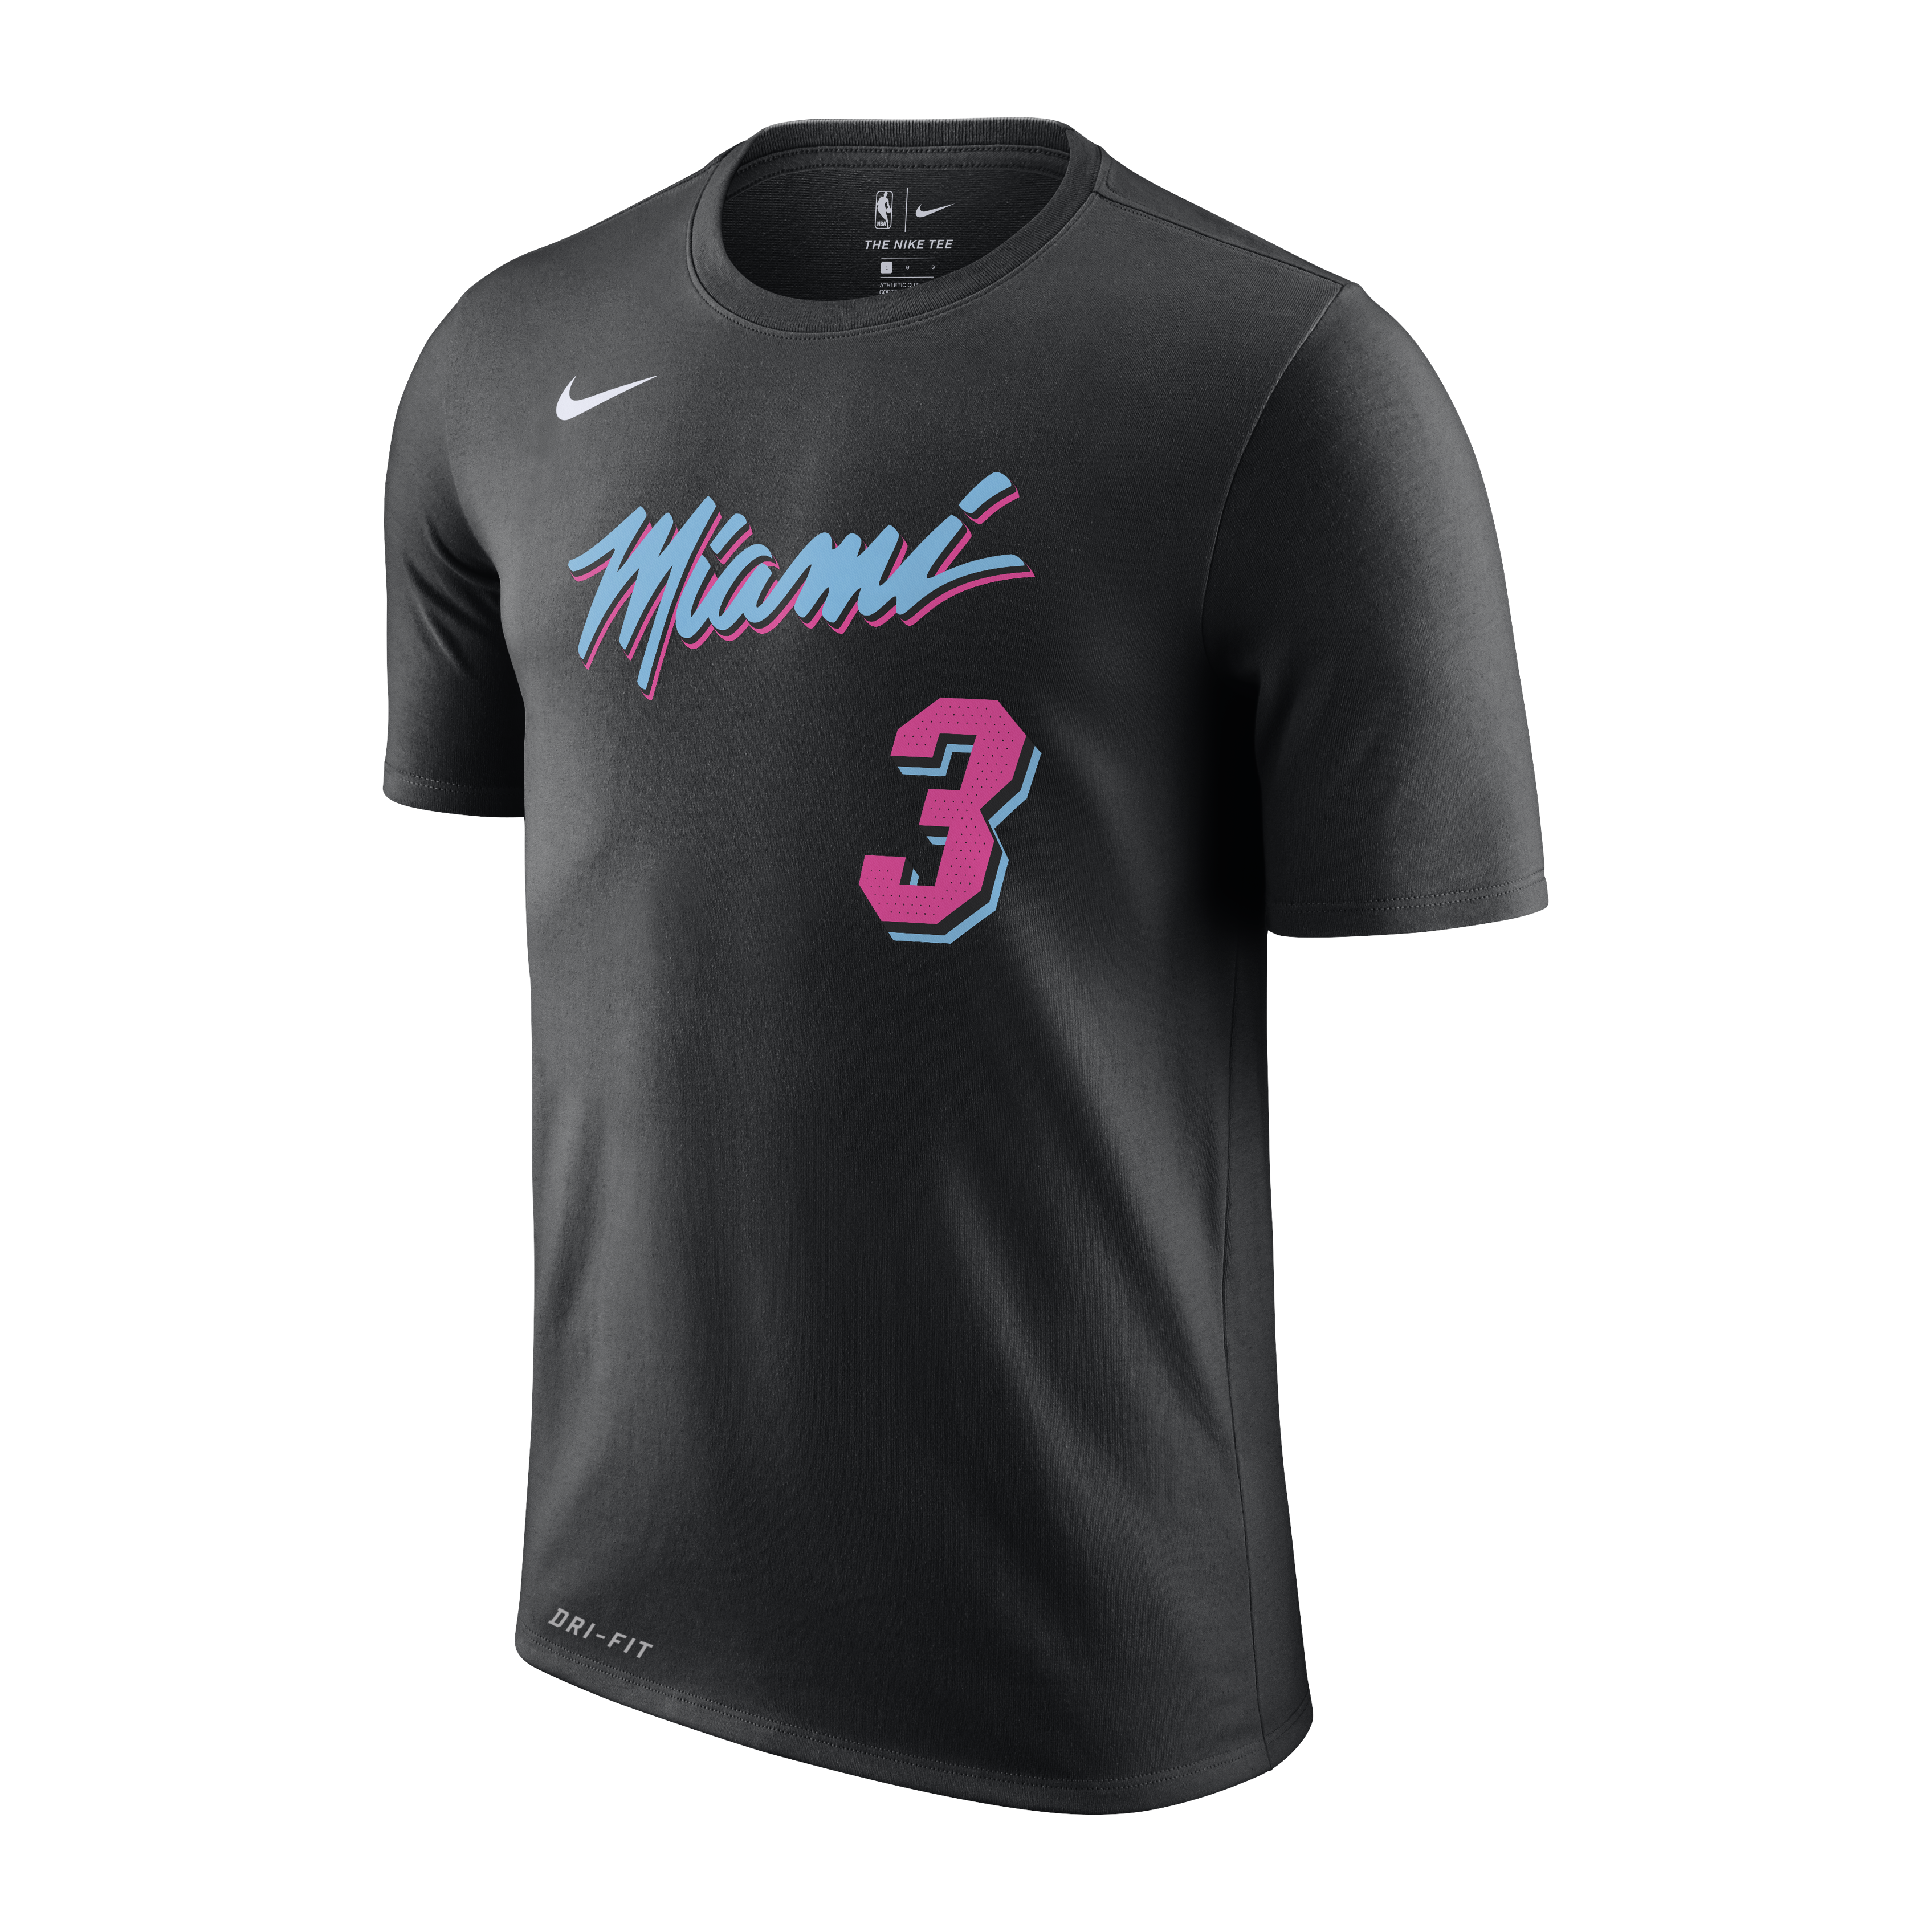 8219bdbd1 Dwyane Wade Nike Miami HEAT Youth Vice Nights Name   Number Tee - featured  image